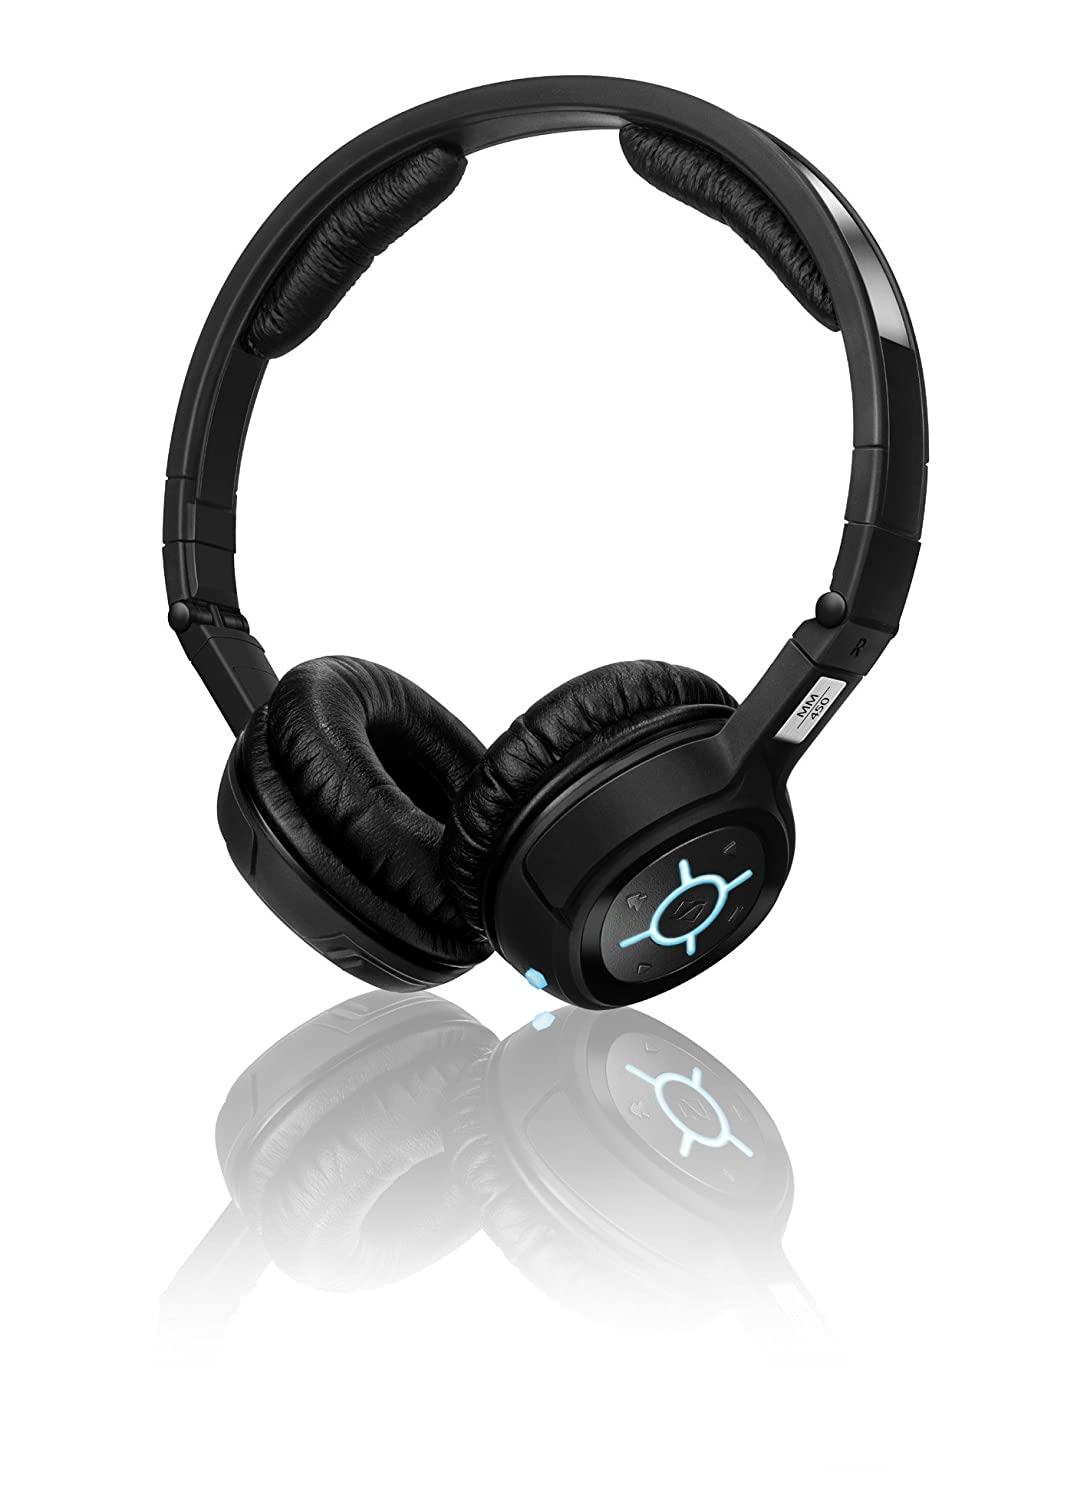 Sennheiser MM 450 Flight Bluetooth Multimedia Headset with Noise Cancellation – $199.99